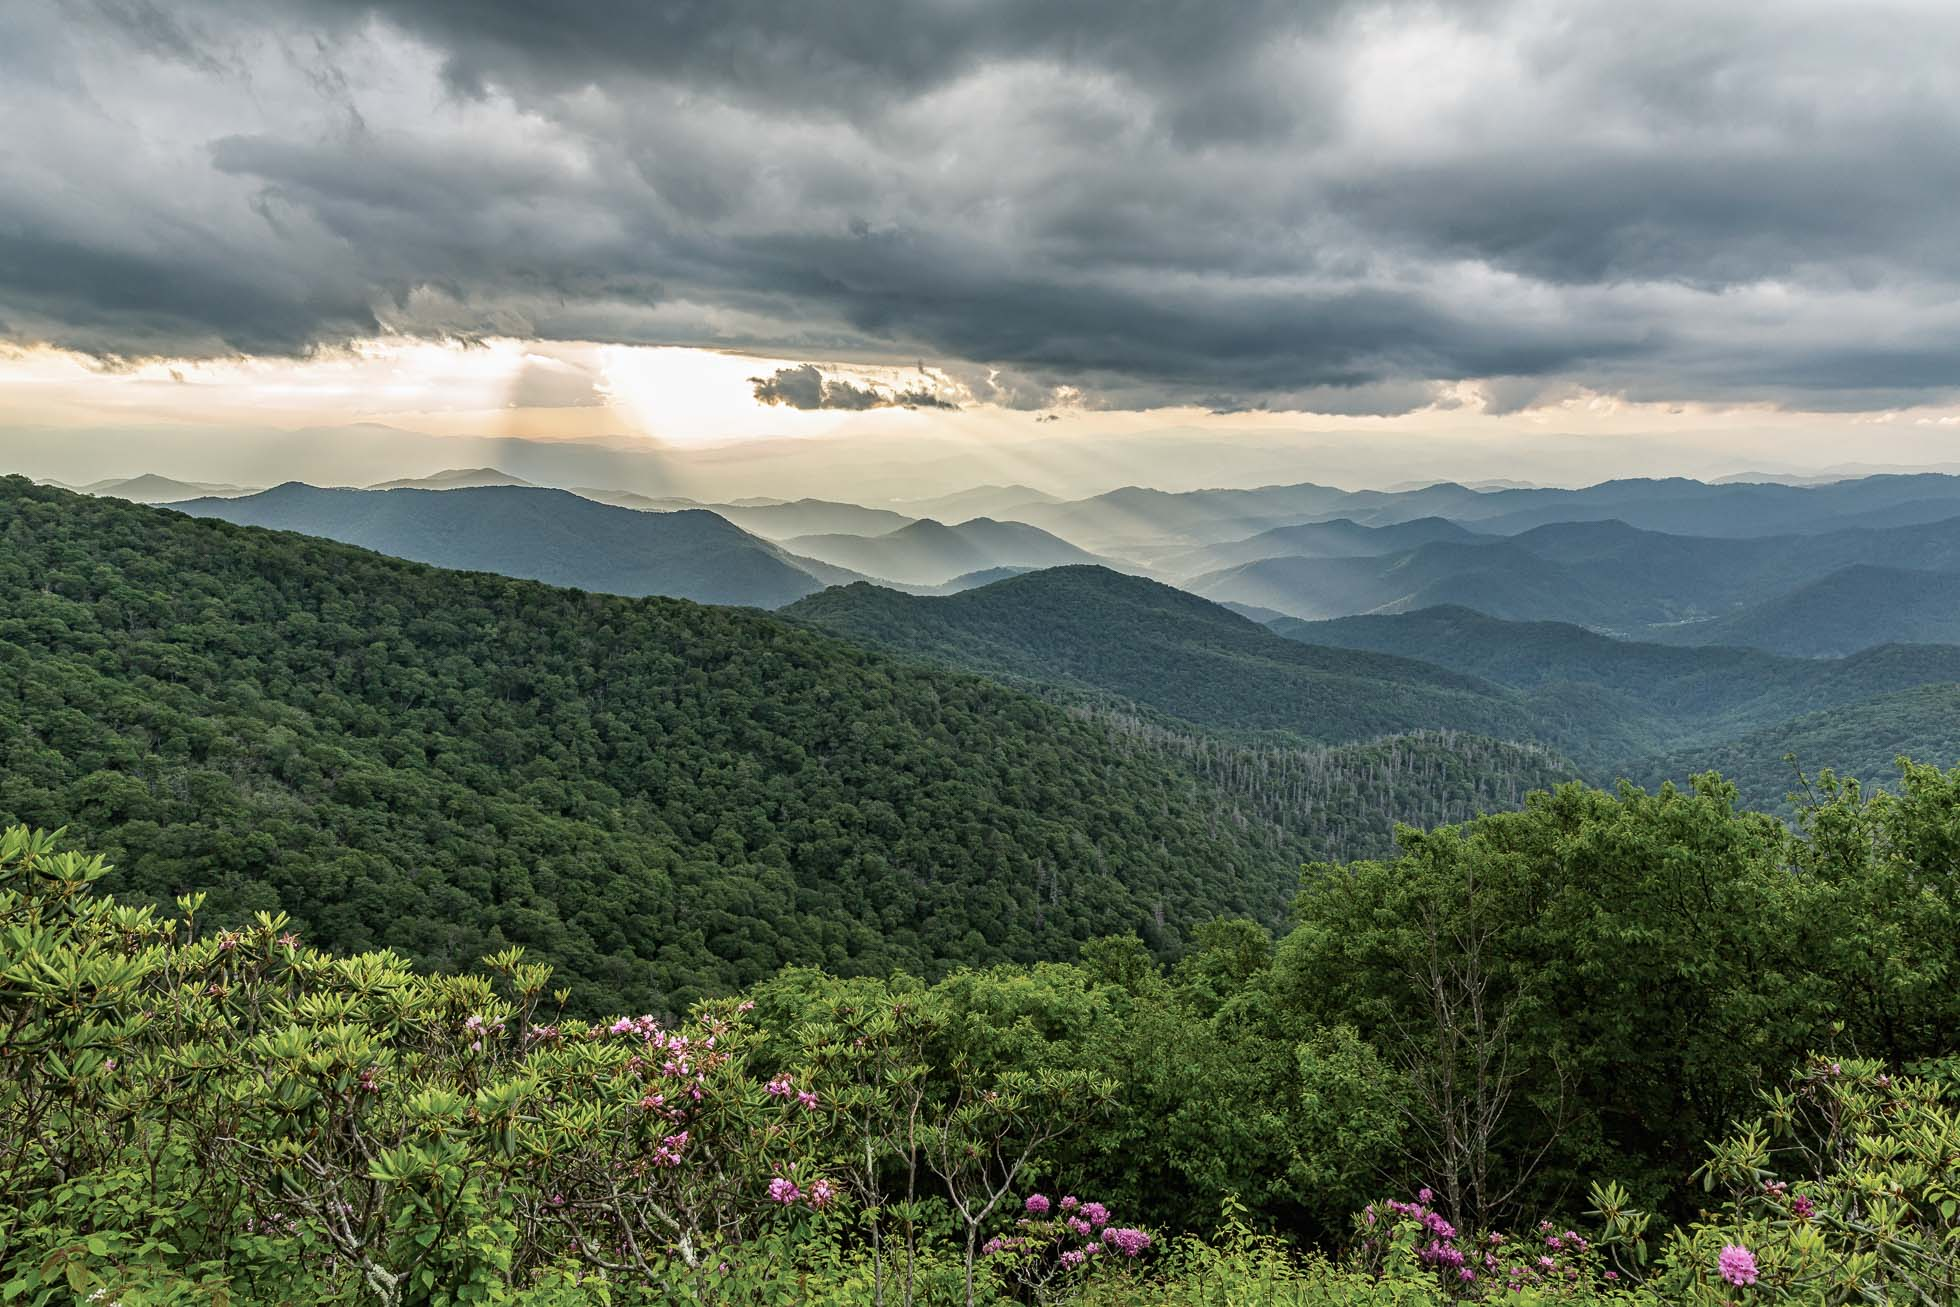 Sun rays dance on the Blue Ridge Mountains near Craggy Gardens on the Blue Ridge Parkway.